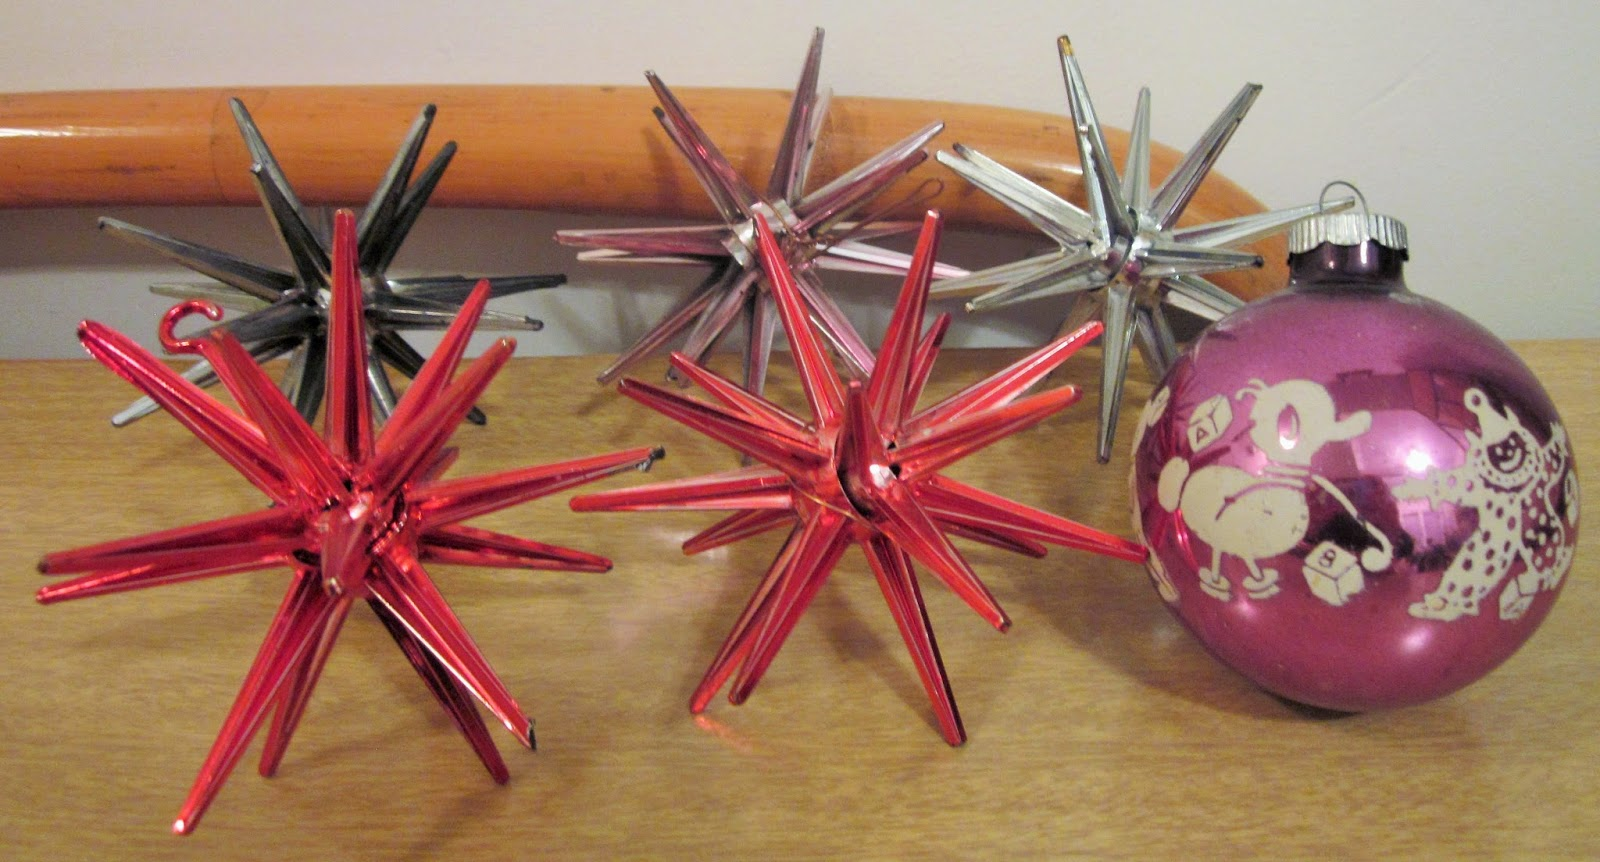 Sputnik christmas ornaments - Sputnik Ornaments And An Old Glass Ornament With A Duck And A Clown